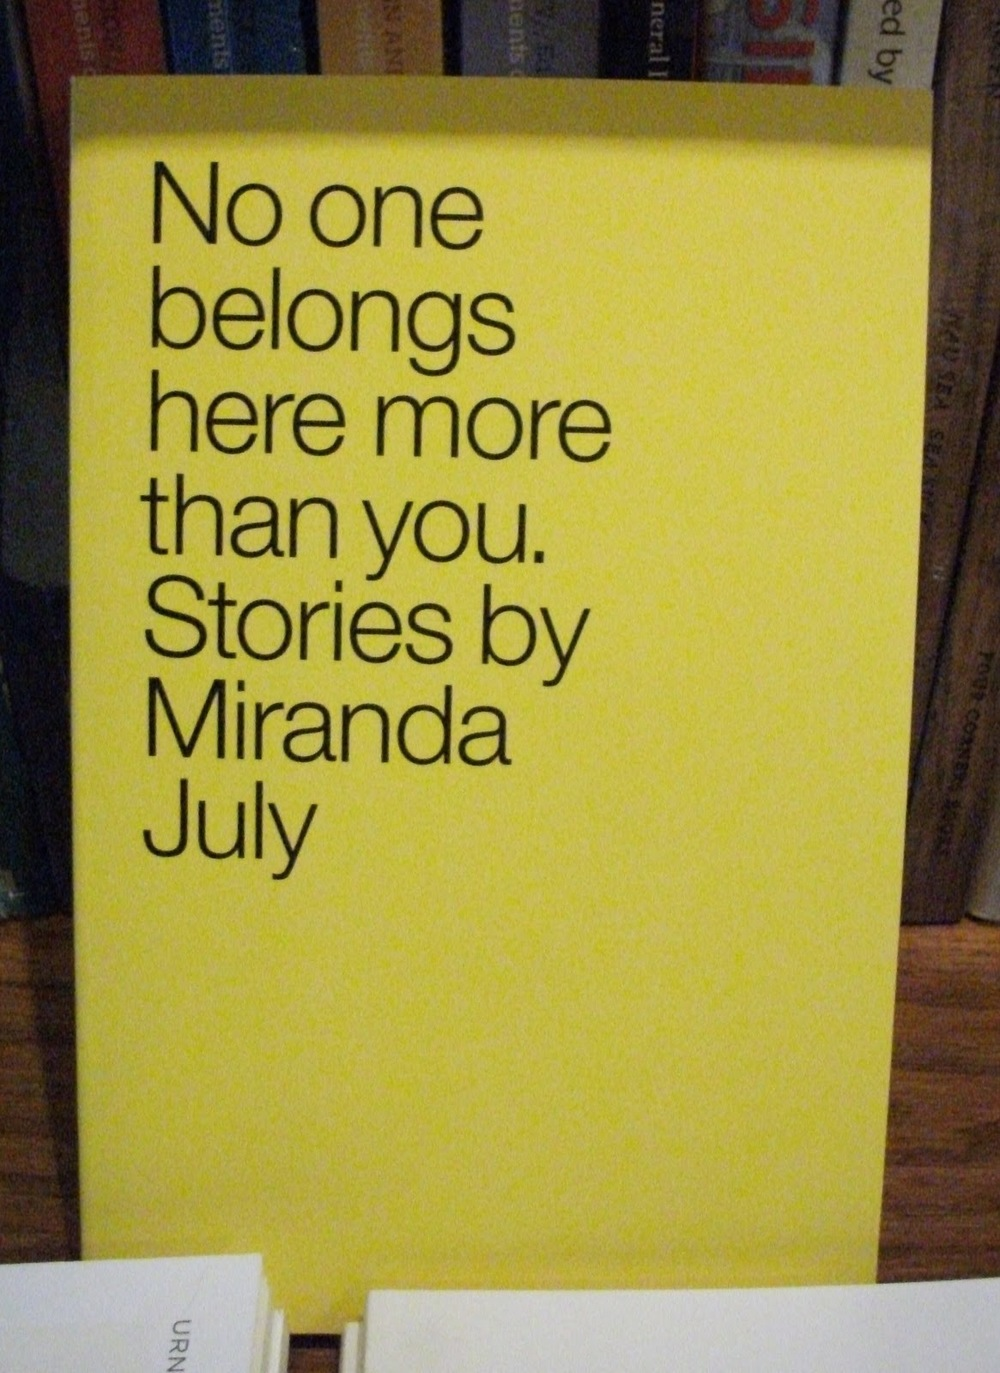 "Award-winning filmmaker and performing artist Miranda July brings her extraordinary talents to the page in a startling, sexy, and tender collection. In these stories, July gives the most seemingly insignificant moments a sly potency. A benign encounter, a misunderstanding, a shy revelation can reconfigure the world. Her characters engage awkwardly -- they are sometimes too remote, sometimes too intimate. With great compassion and generosity, July reveals their idiosyncrasies and the odd logic and longing that govern their lives. ""No One Belongs Here More Than You"" is a stunning debut, the work of a writer with a spectacularly original and compelling voice. (9/10)"